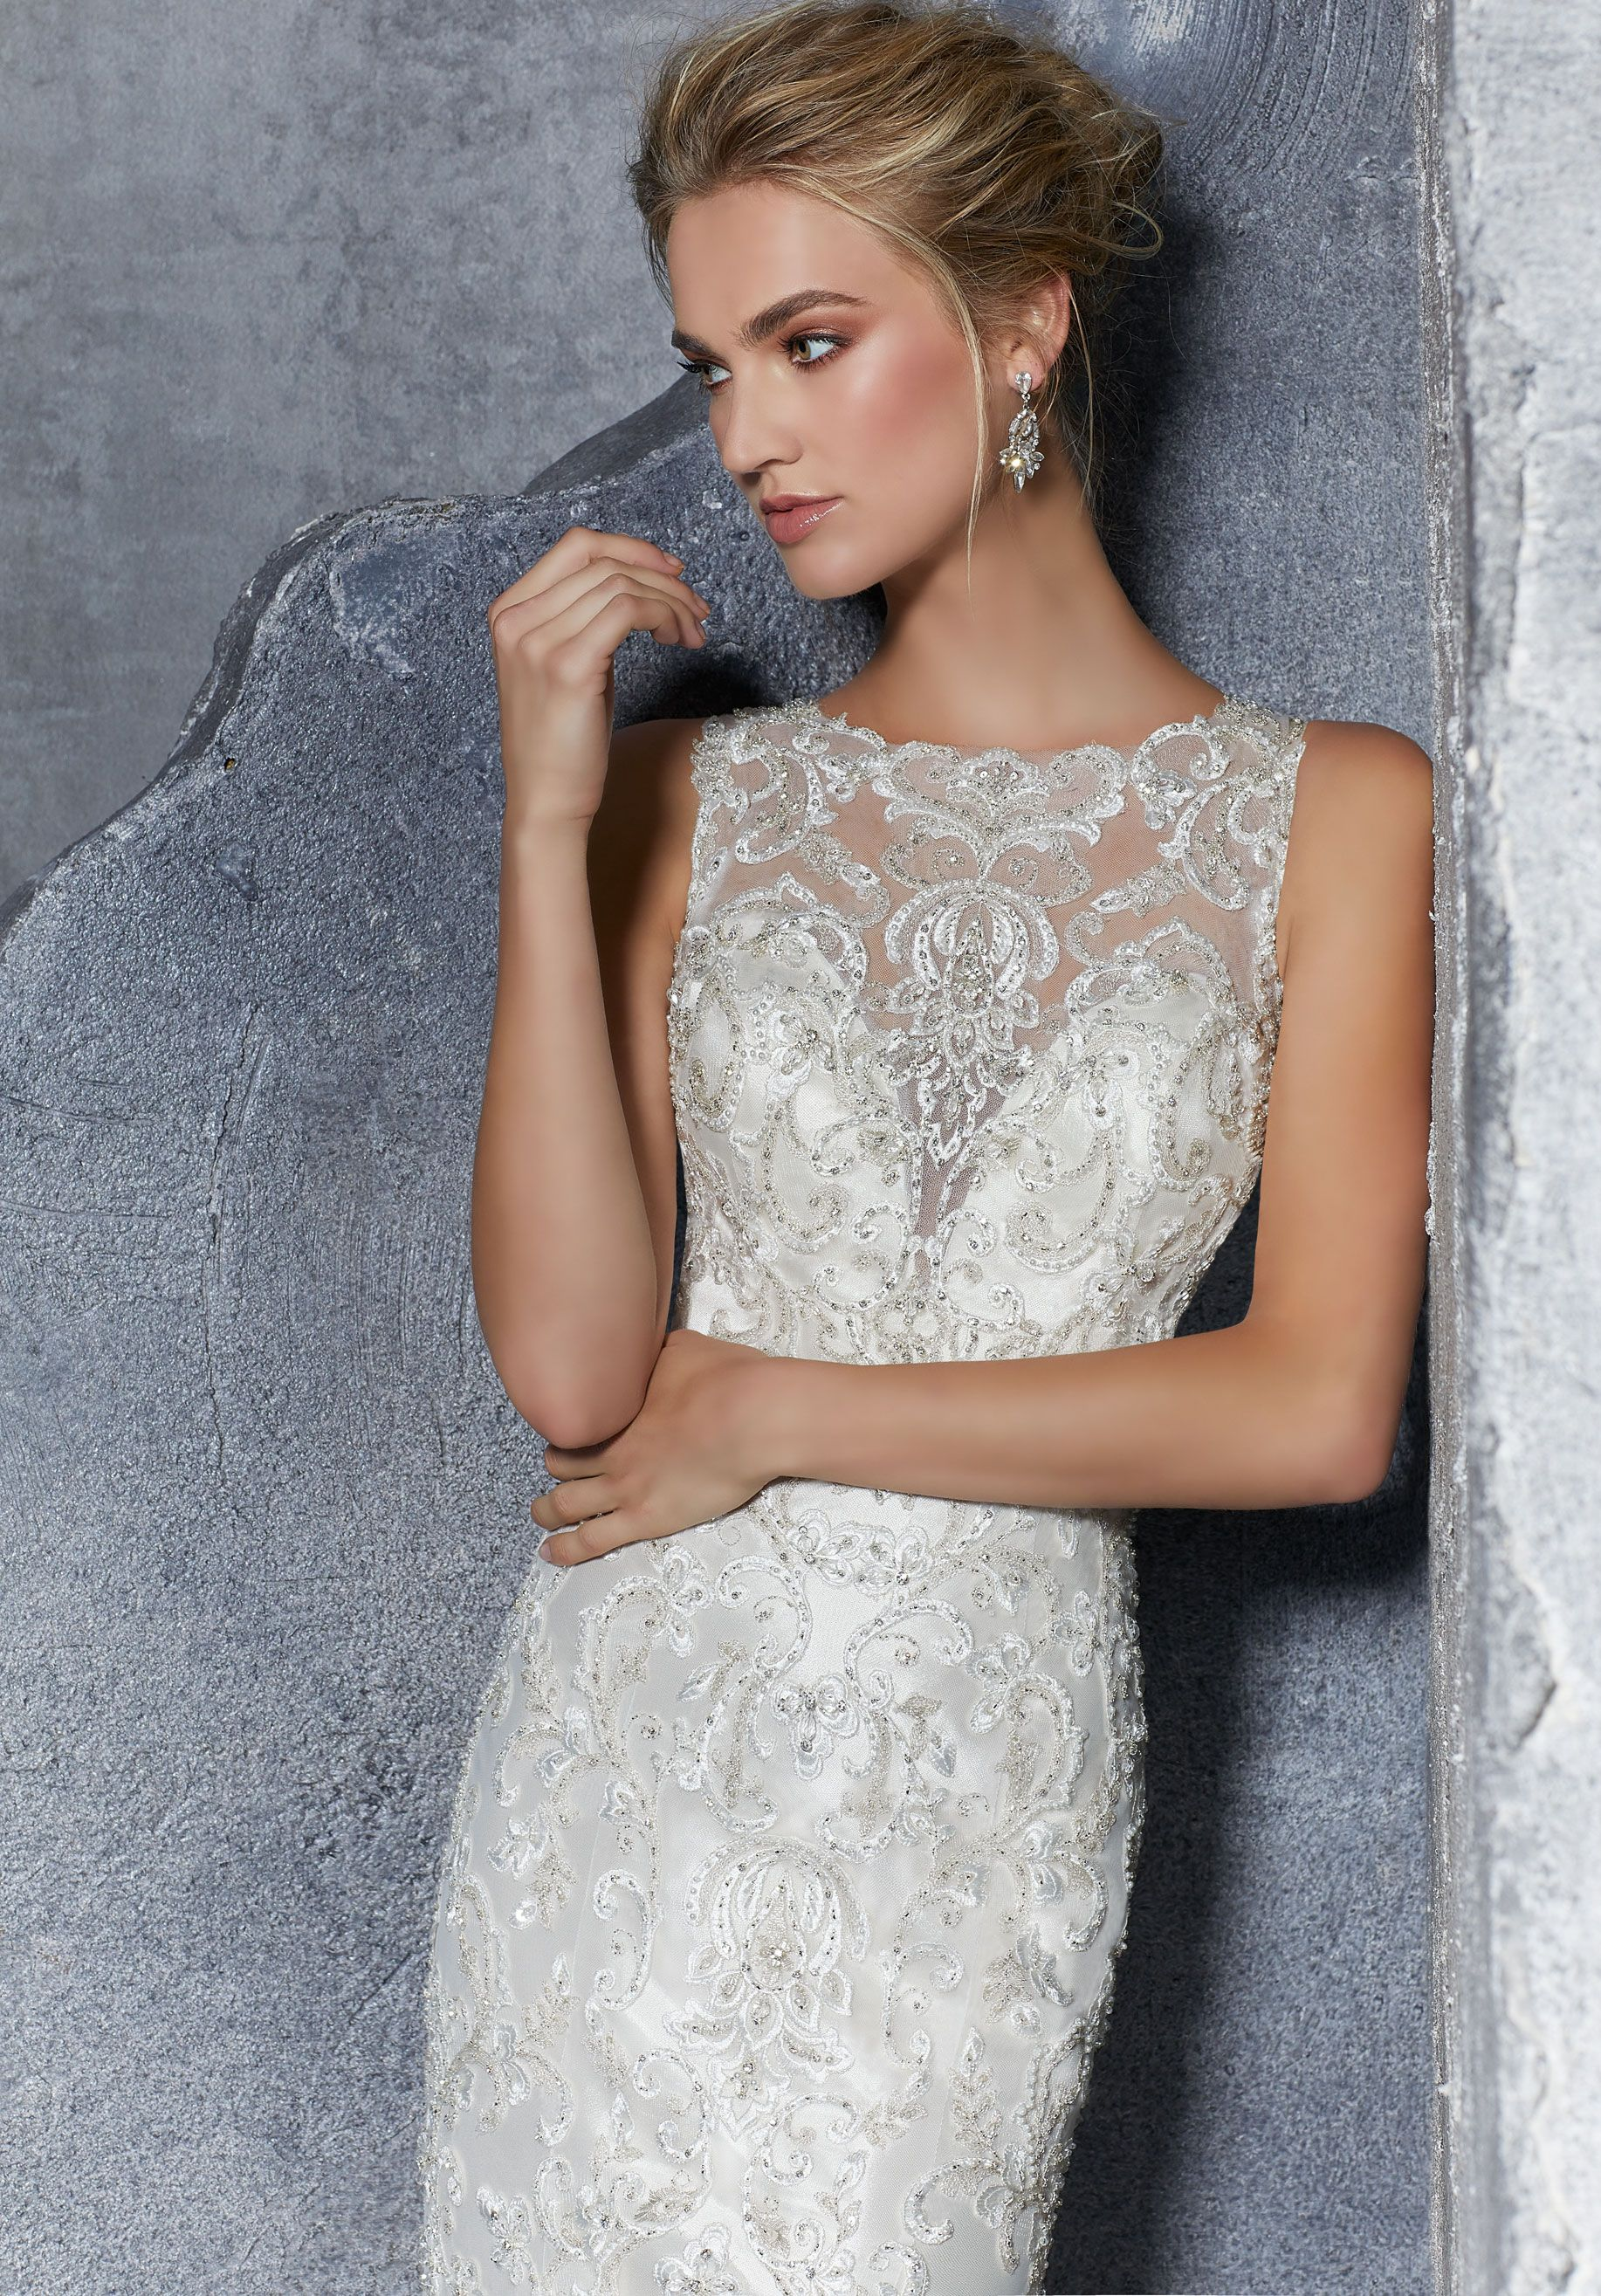 Grey lace wedding dress  High cut beaded and lace gown  Bridal Gowns  Pinterest  Gowns